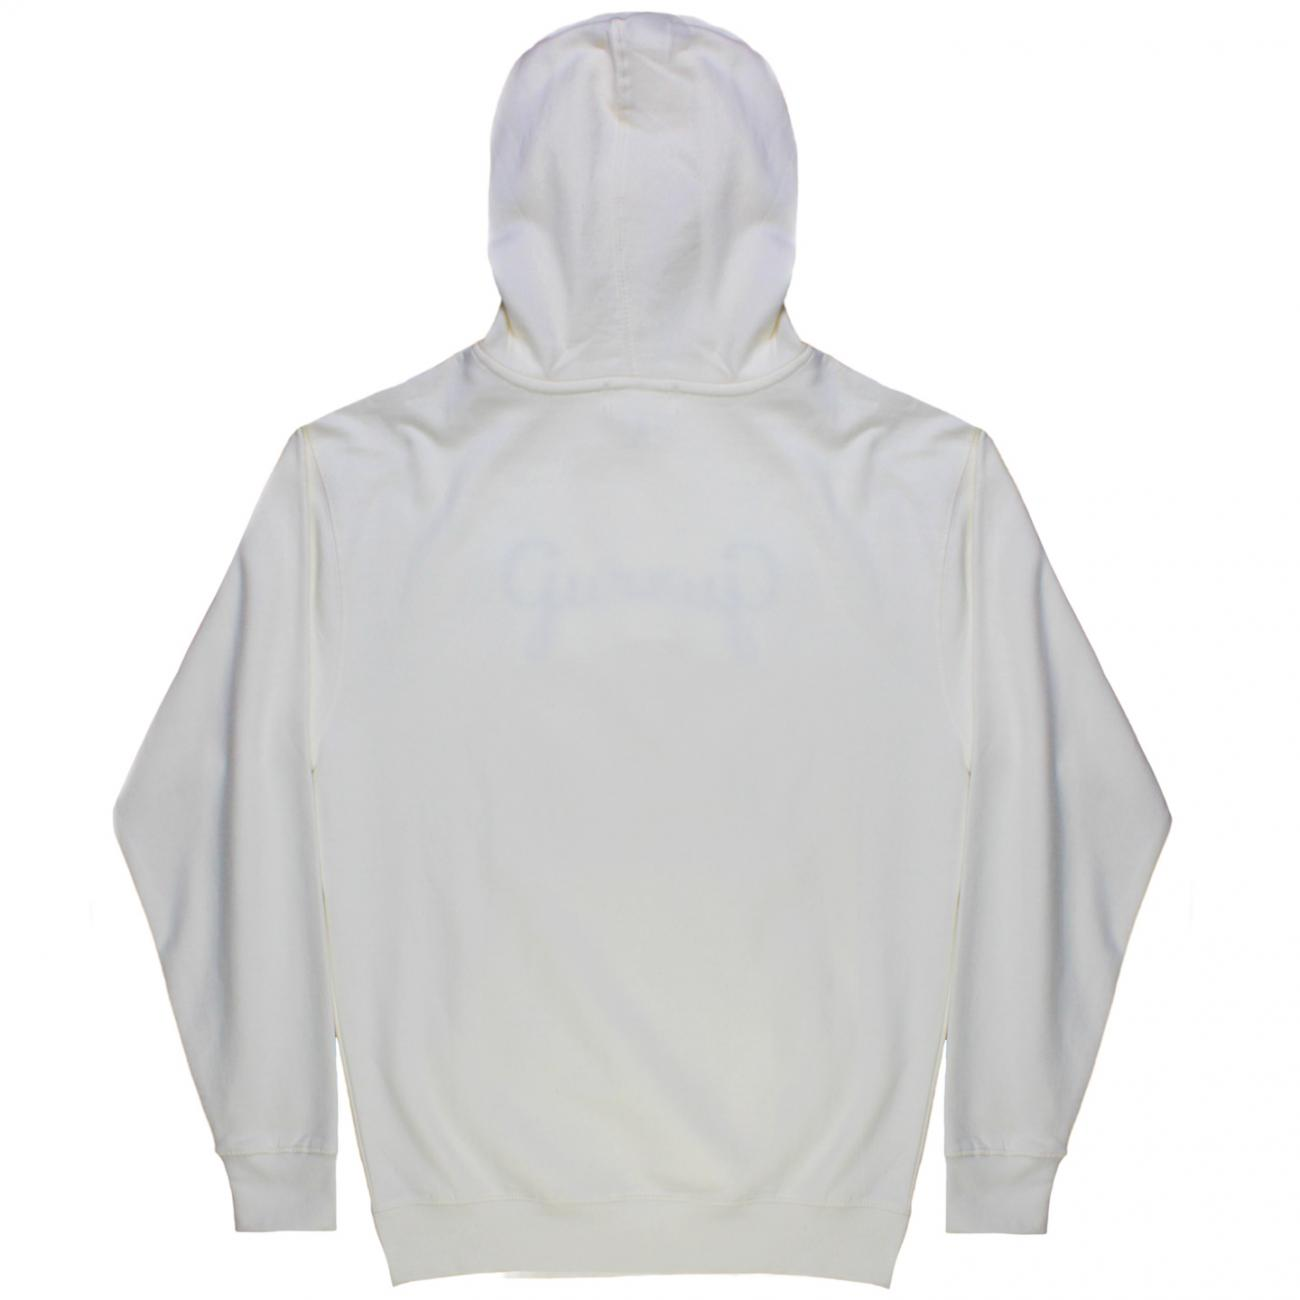 Gurney's Hoodie embroidered across chest back bone